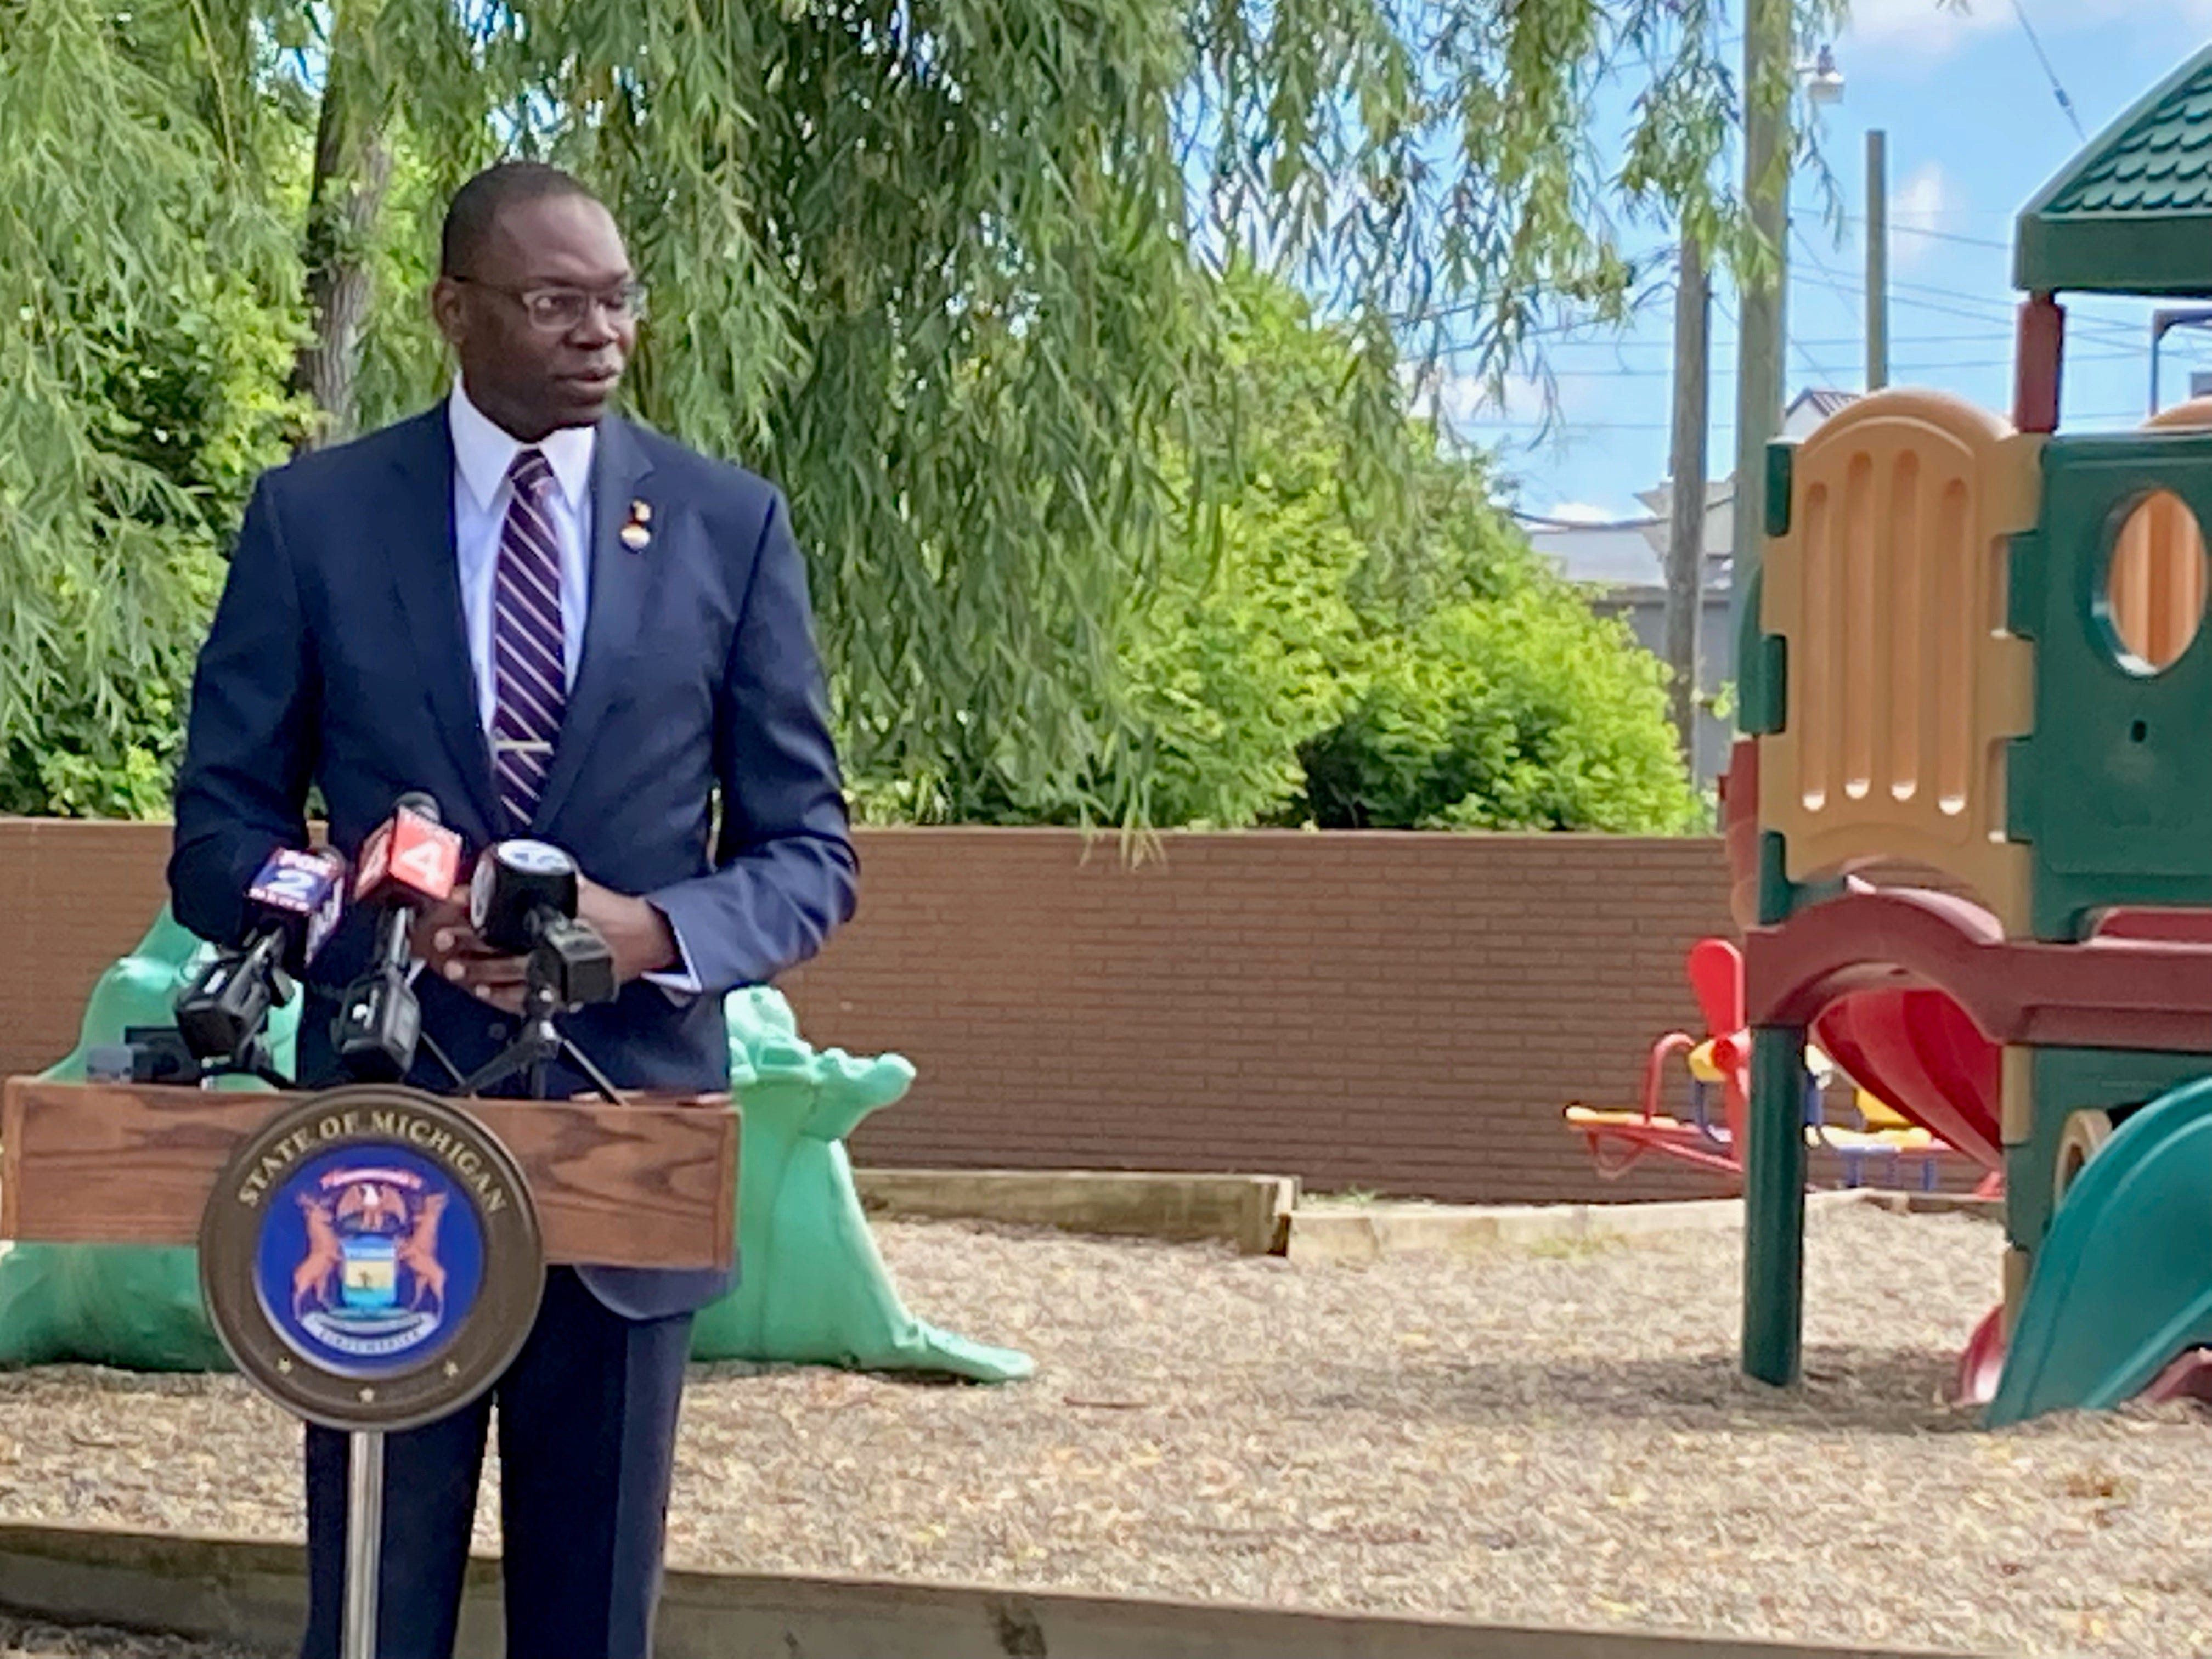 Michigan aims to replace Benton Harbor's lead pipes in 18 months, Gilchrist says